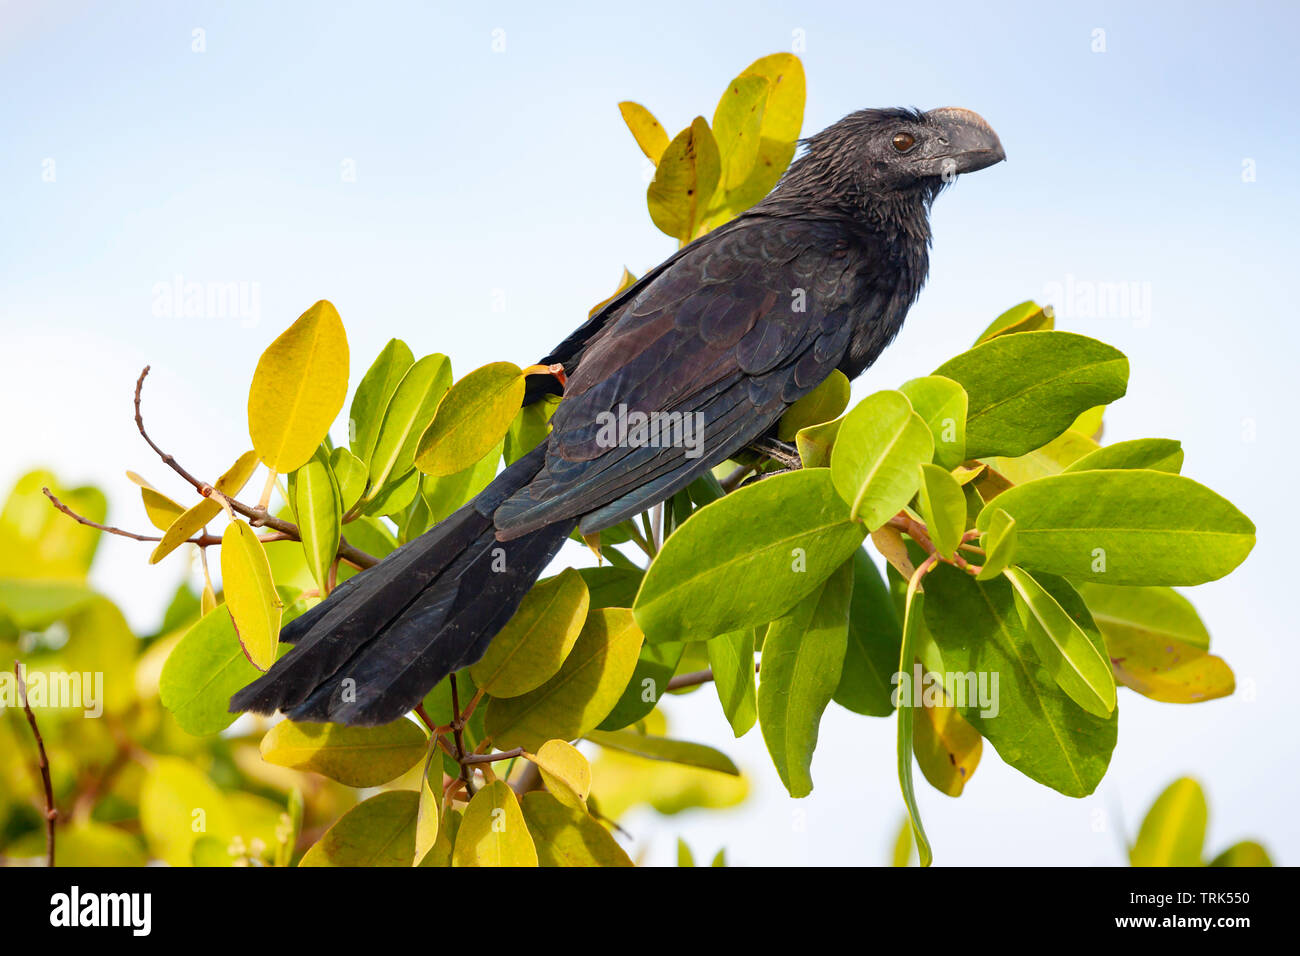 The smooth-billed Ani, Crotophaga ani, was brought to Santa Cruz Island, Galapagos from mainland Ecuador by farmers to alleviate tick problems on thei - Stock Image